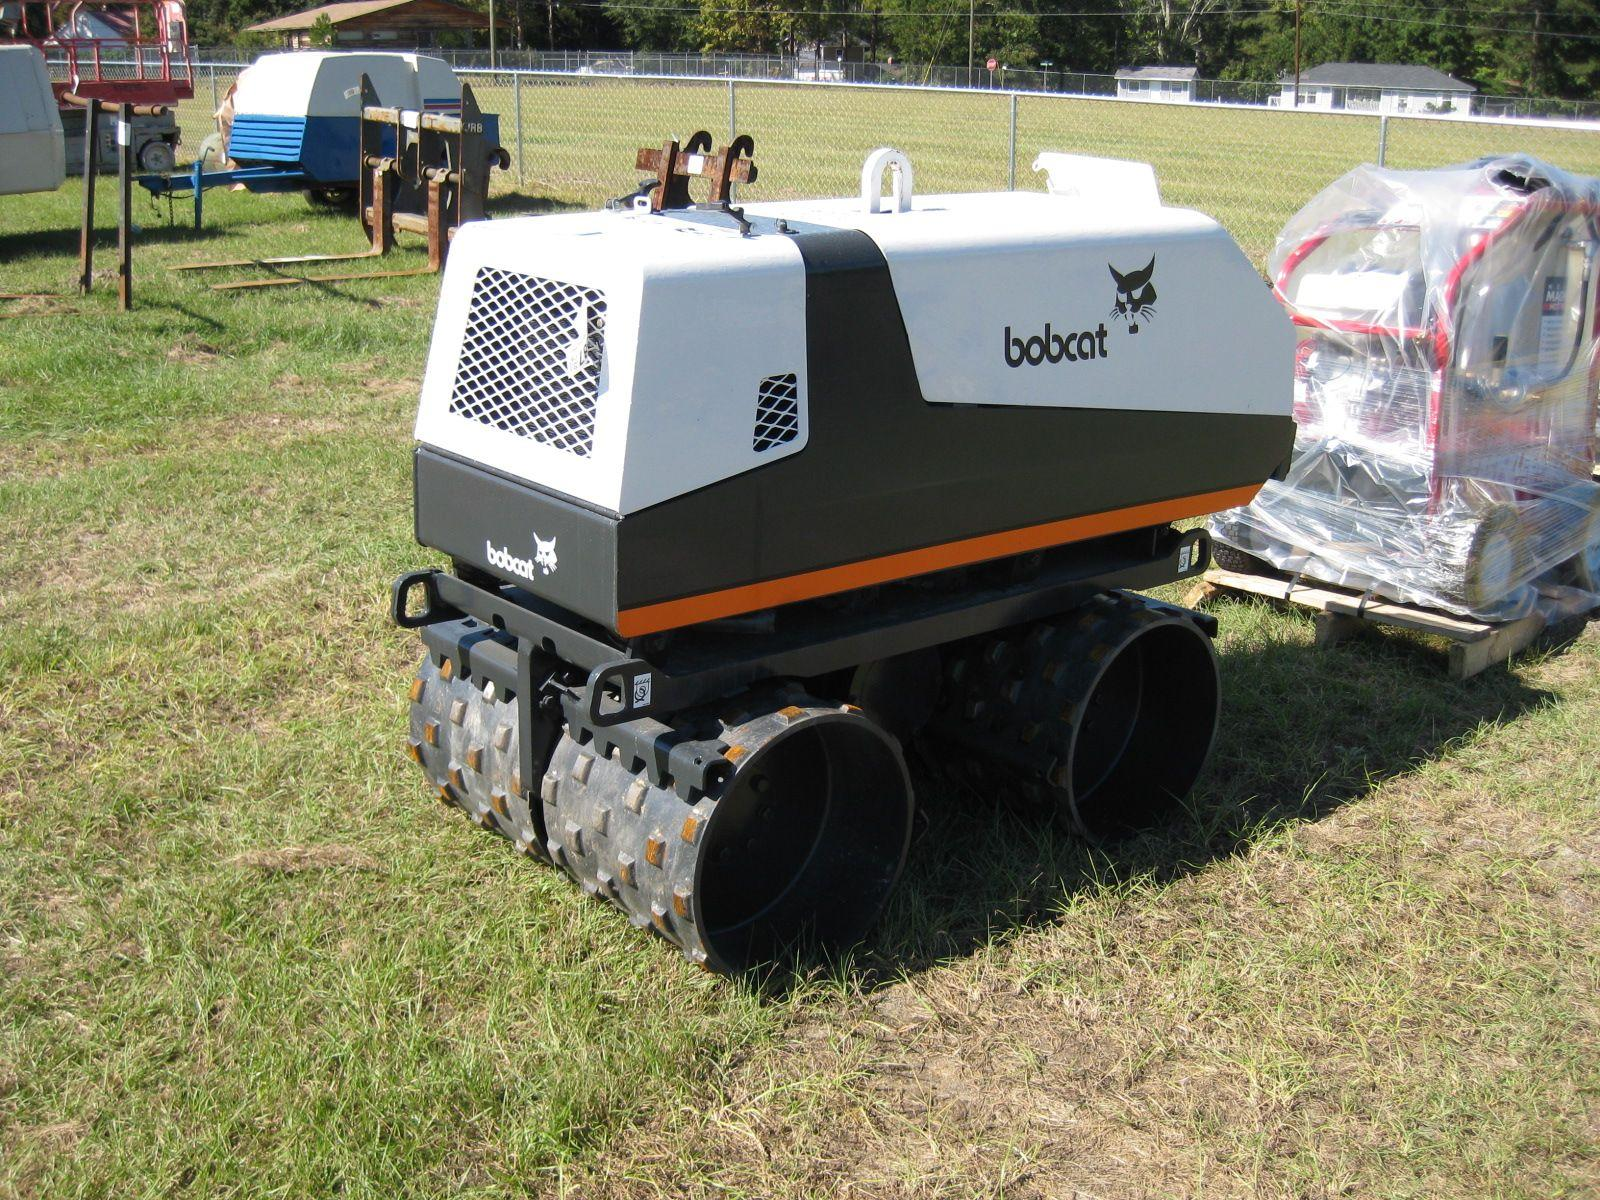 hight resolution of bobcat ingersoll rand bct 13 trench compactor s n 18558image 1 bobcat ingersoll rand bct 13 trench